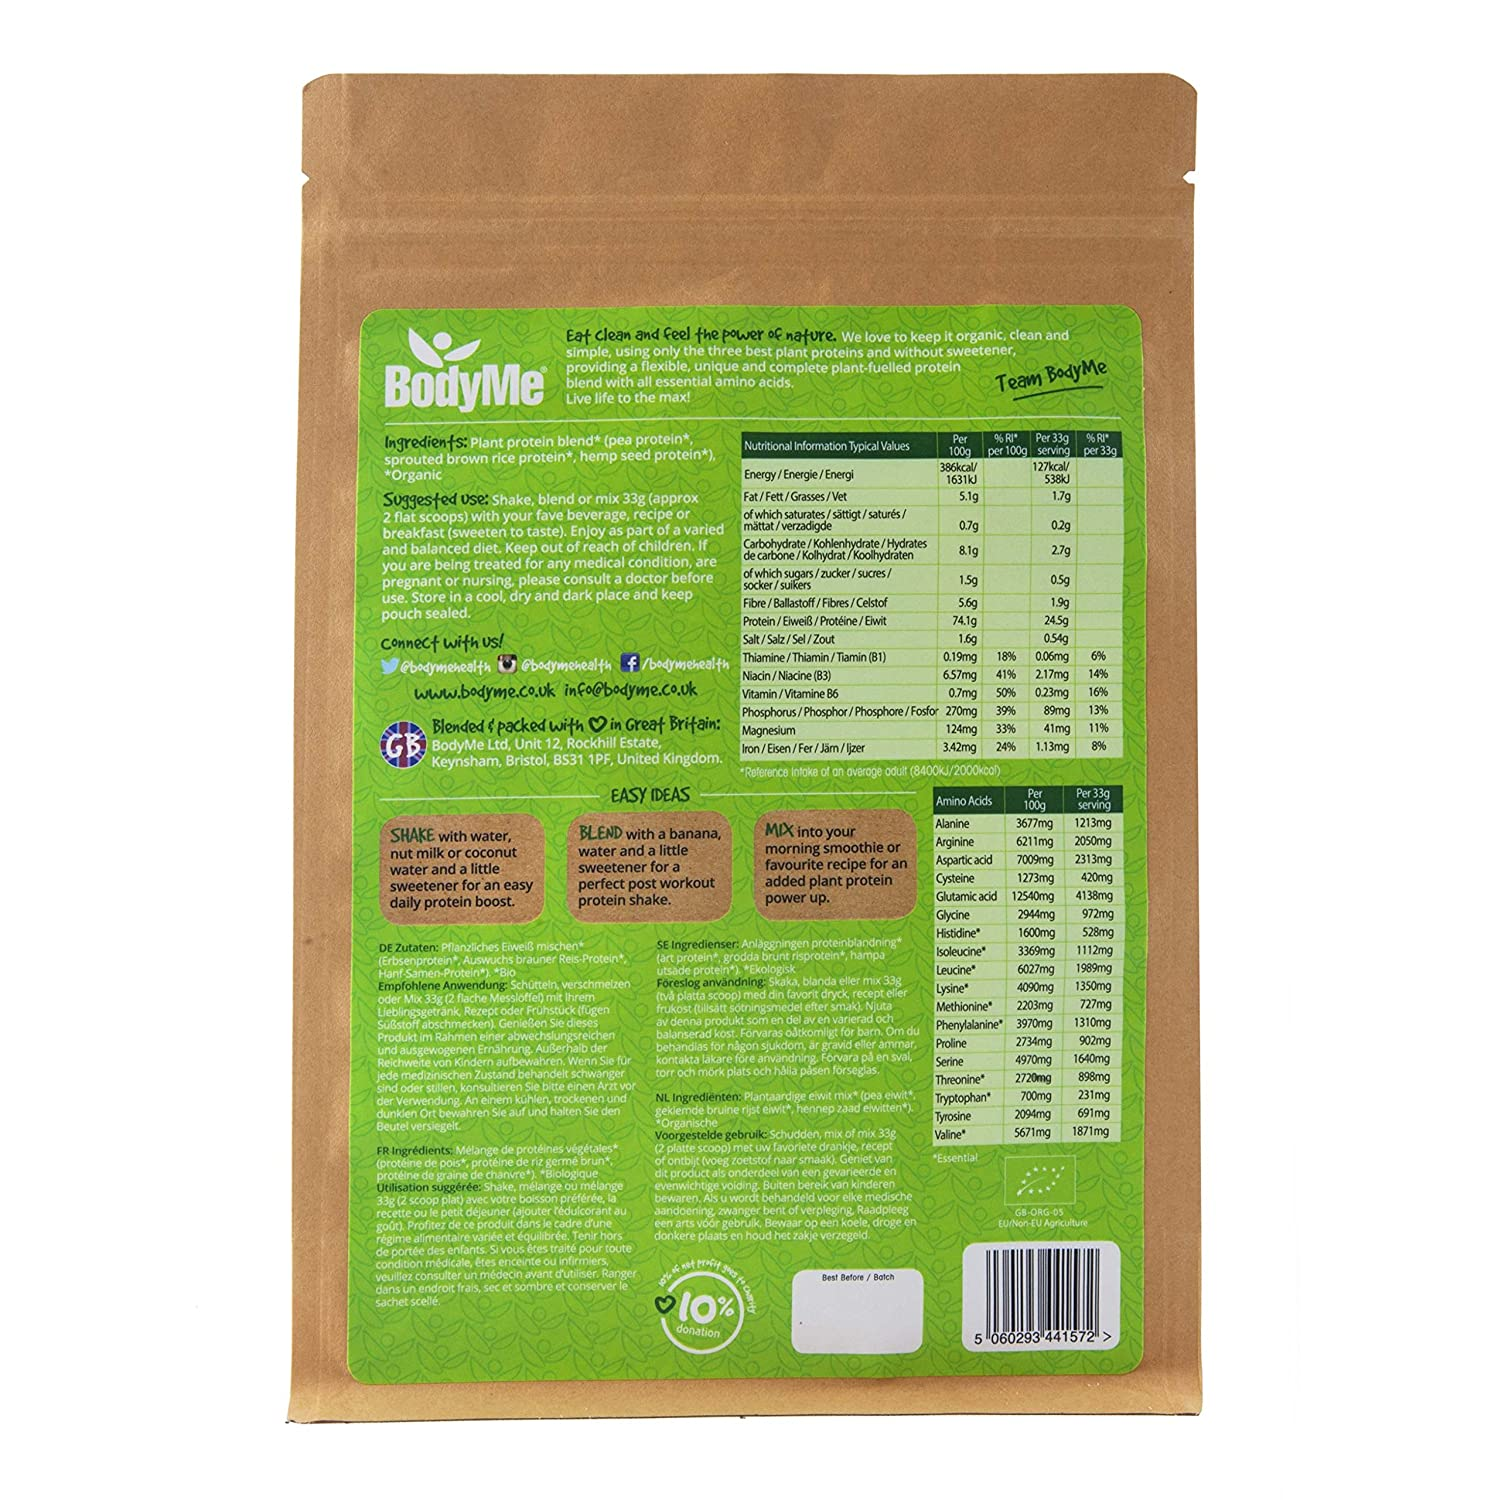 BodyMe Organic Vegan Protein Powder Blend Naked Natural 2.2lb 1kg UNSWEETENED with 3 Plant Proteins